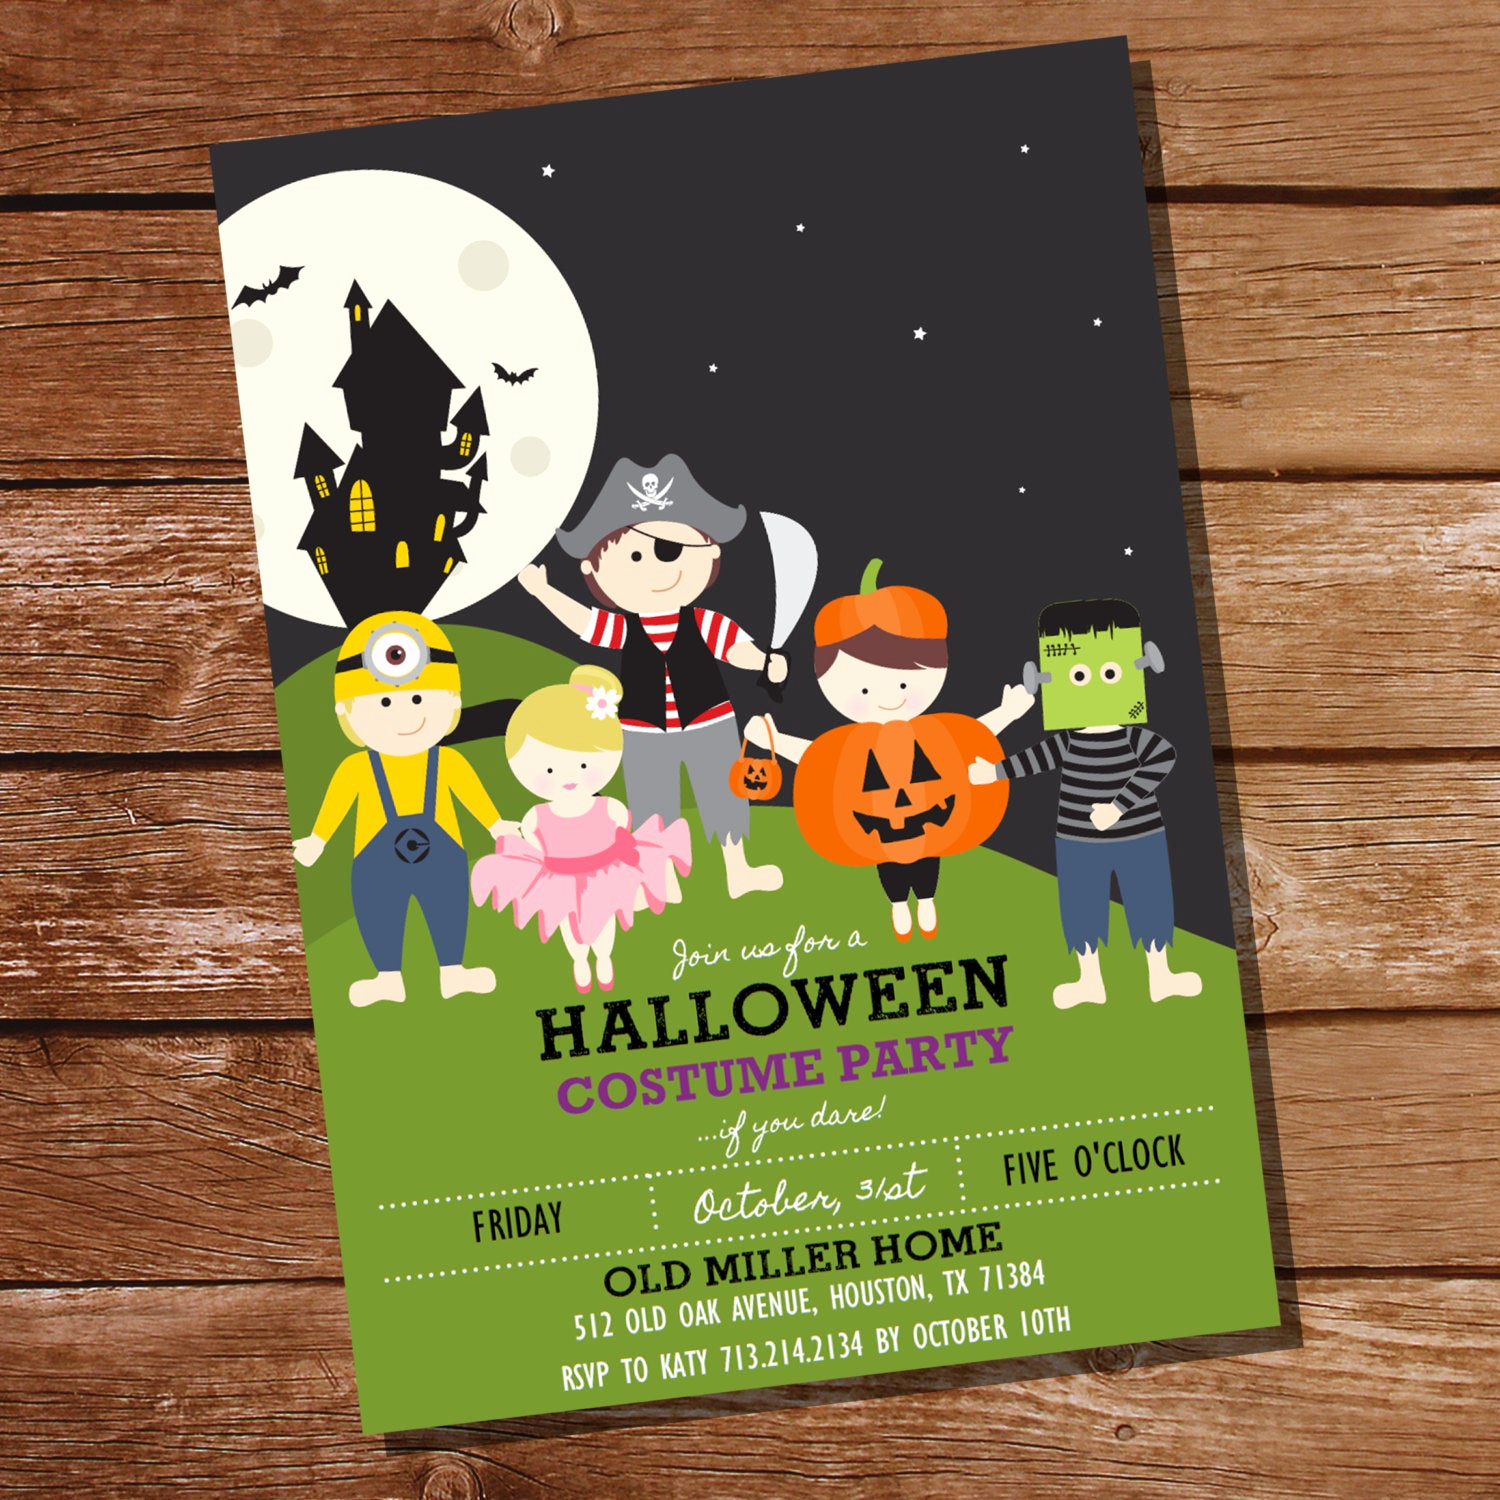 Halloween Costume Party Invitation Beautiful Halloween Costume Party Invitation Kids Halloween Party